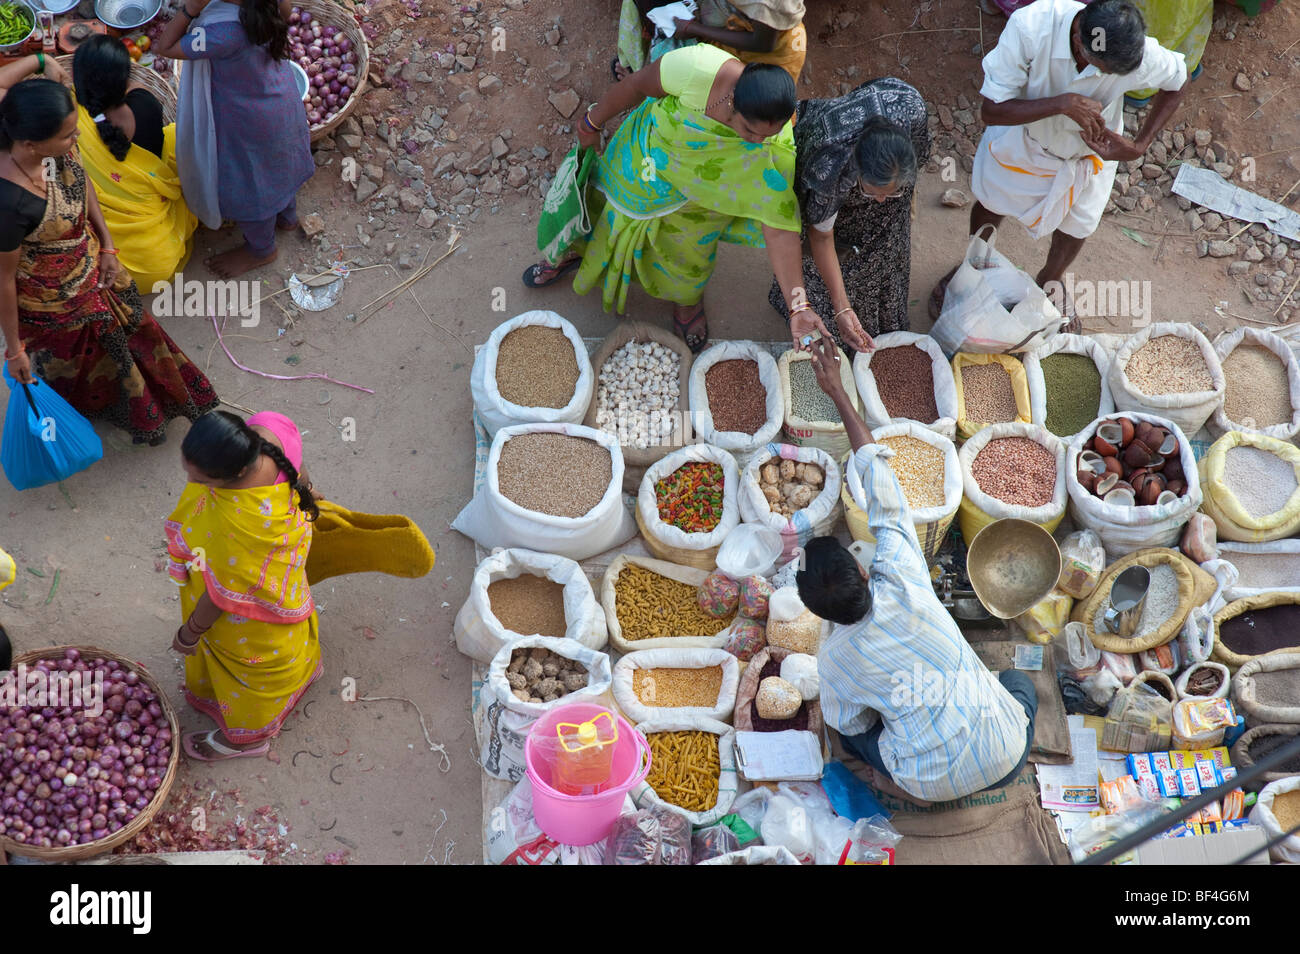 Indian street market with sacks of Indian spices and dried produce. Puttaparthi, Andhra Pradesh, India - Stock Image